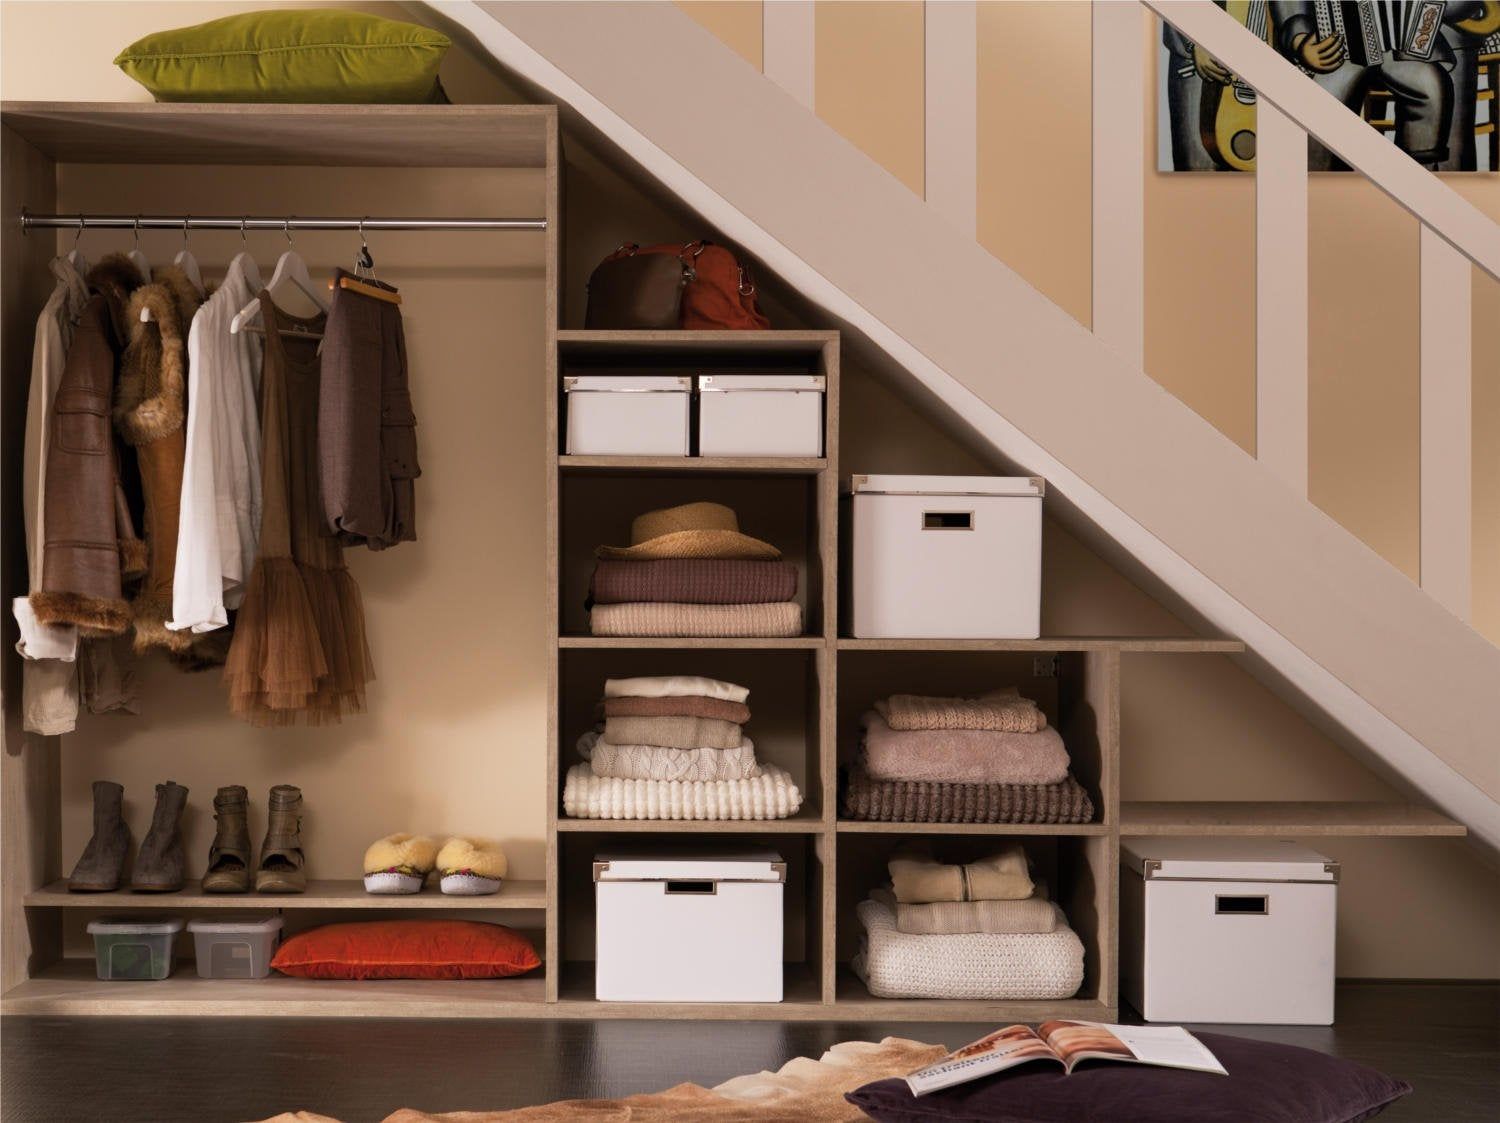 Comment cr er un dressing sous un escalier leroy merlin for Placard modulable